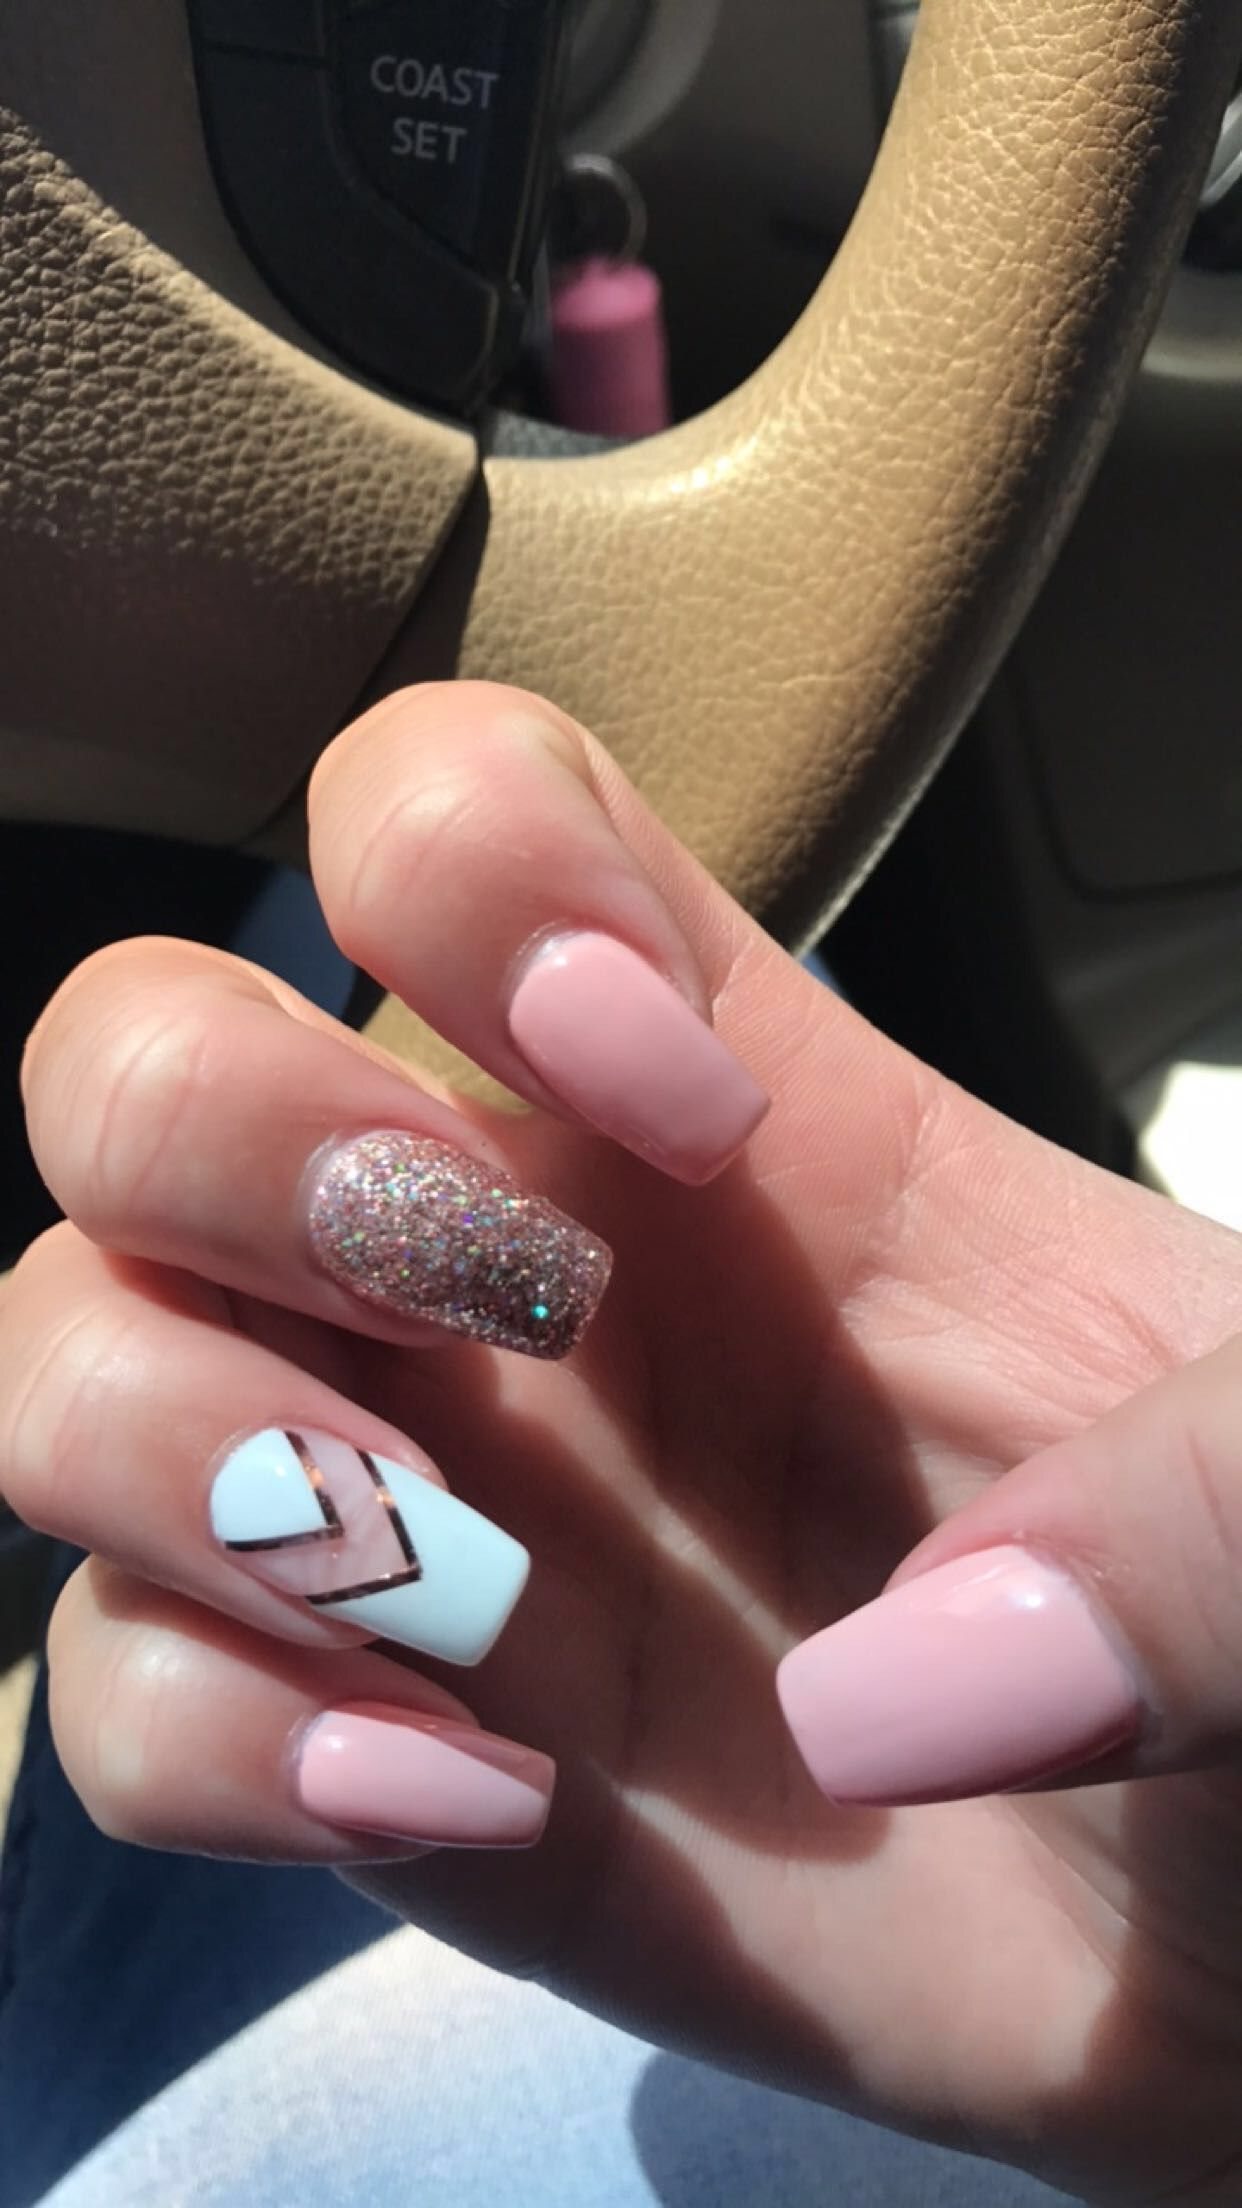 Cute Acrylic Nails Pink Nails Nails With Design Glitter Nails Cute Acrylic Nails Cute Acrylic Nail Designs Cute Pink Nails